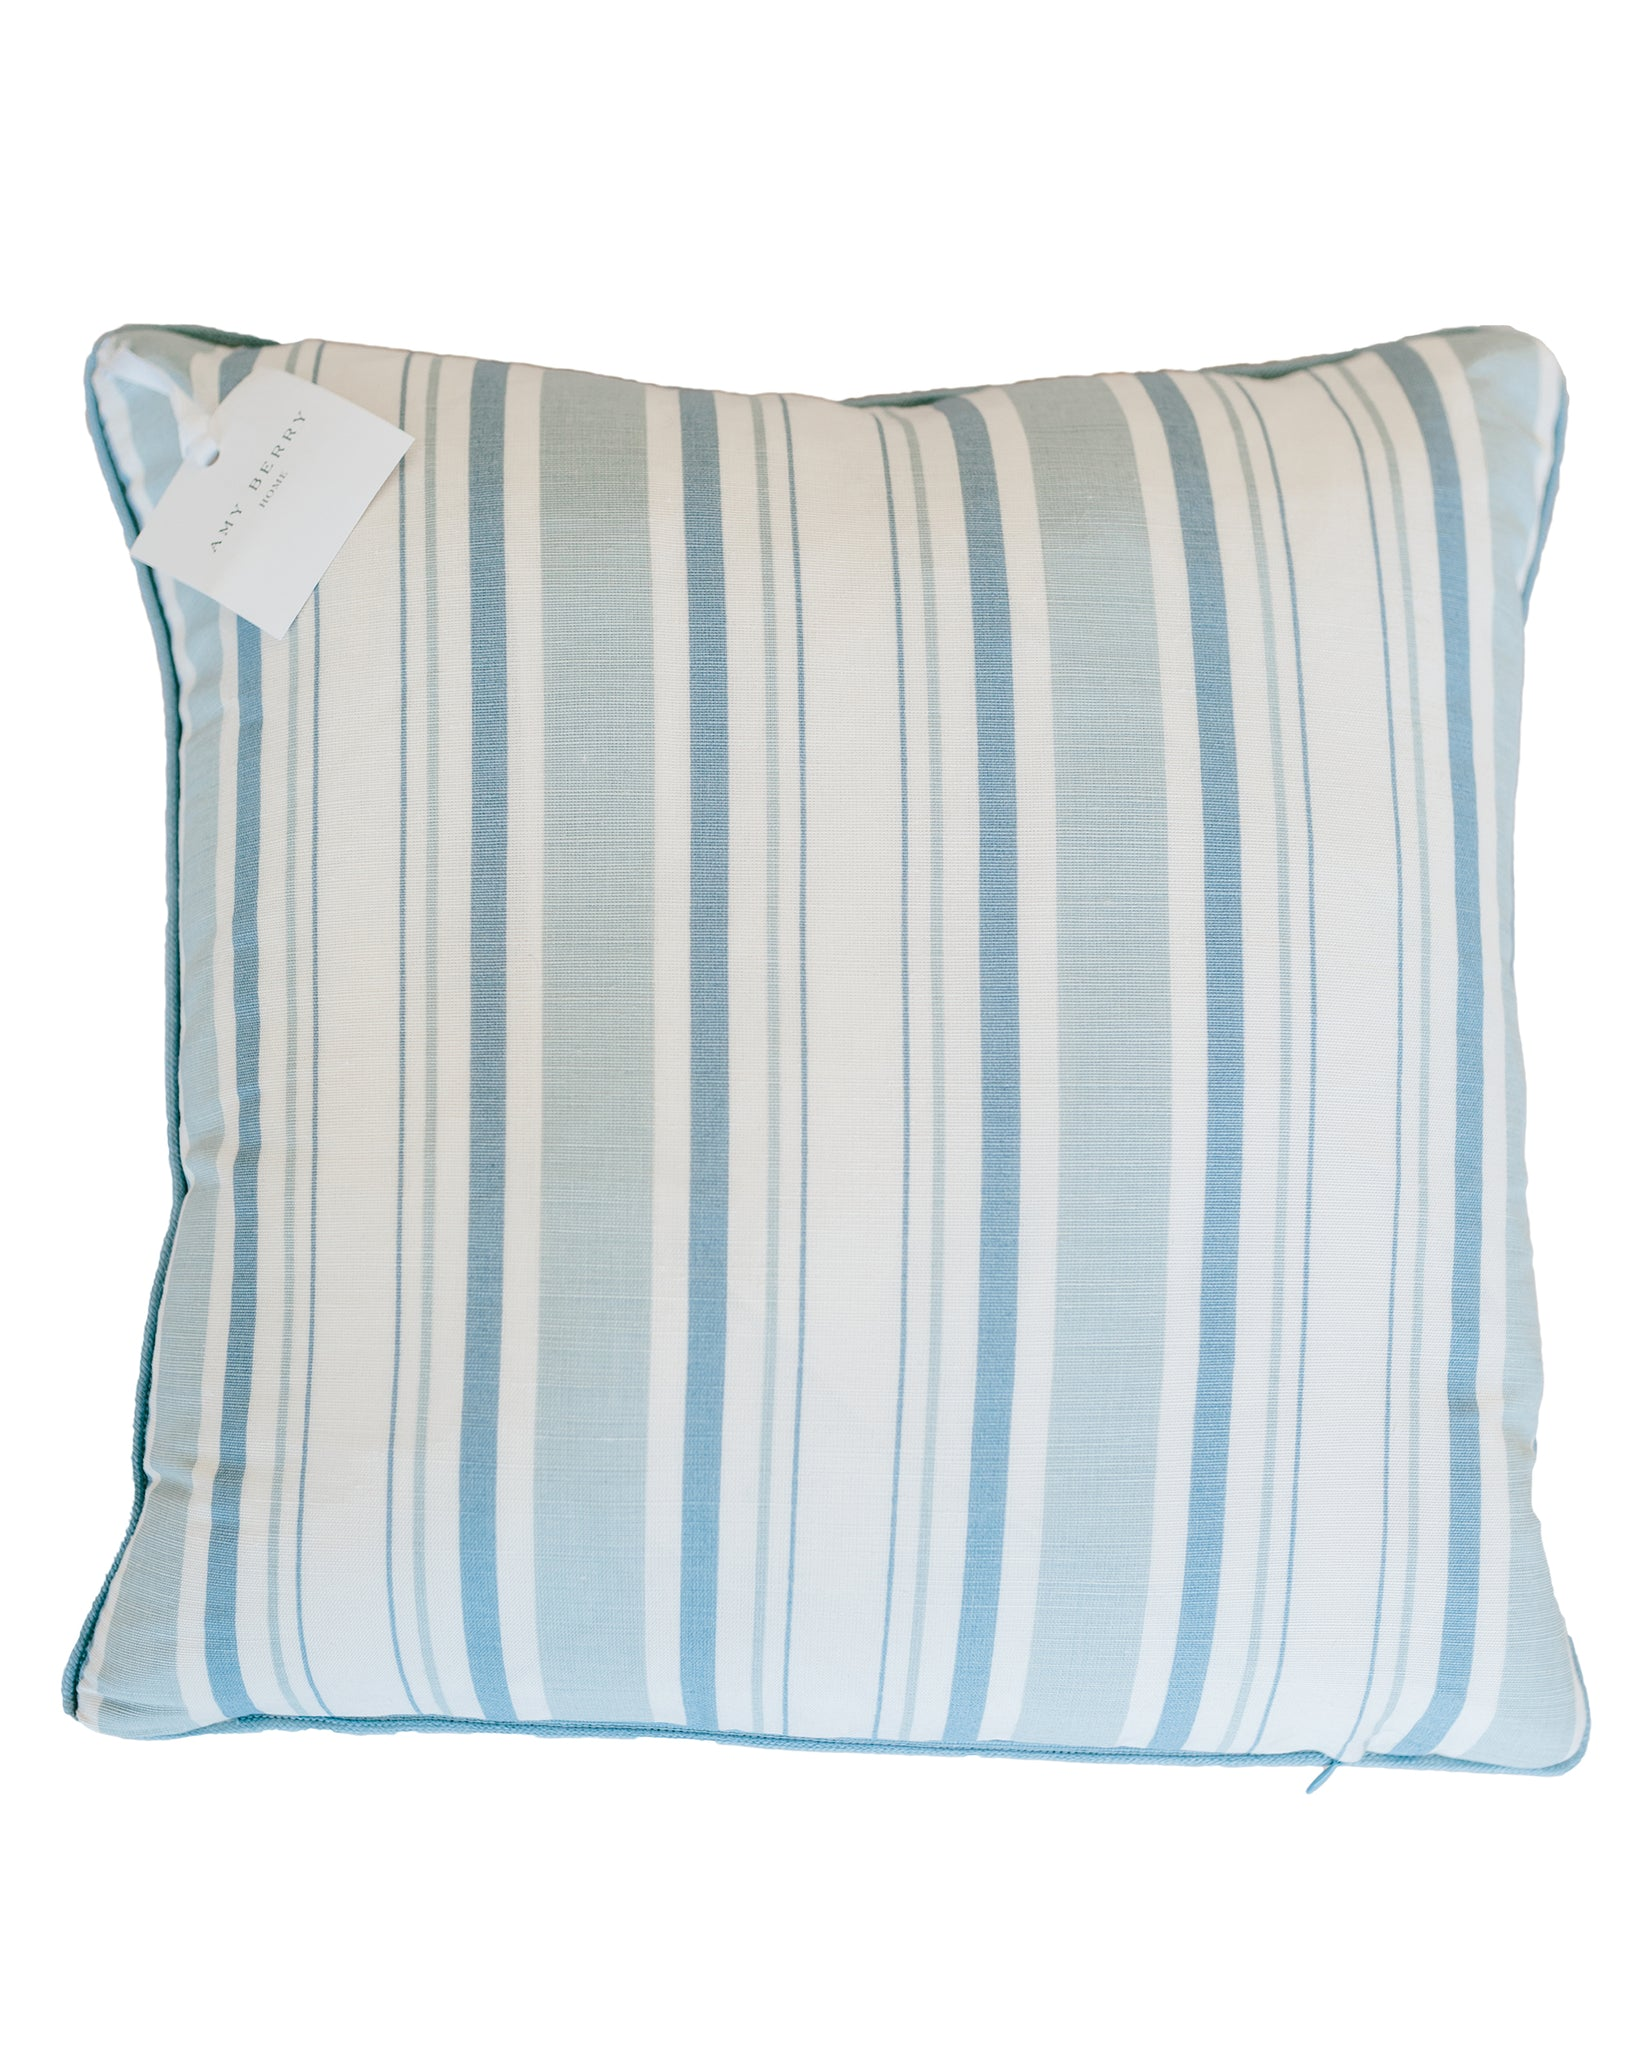 Bennison Stripe Pillows - Amy Berry Home